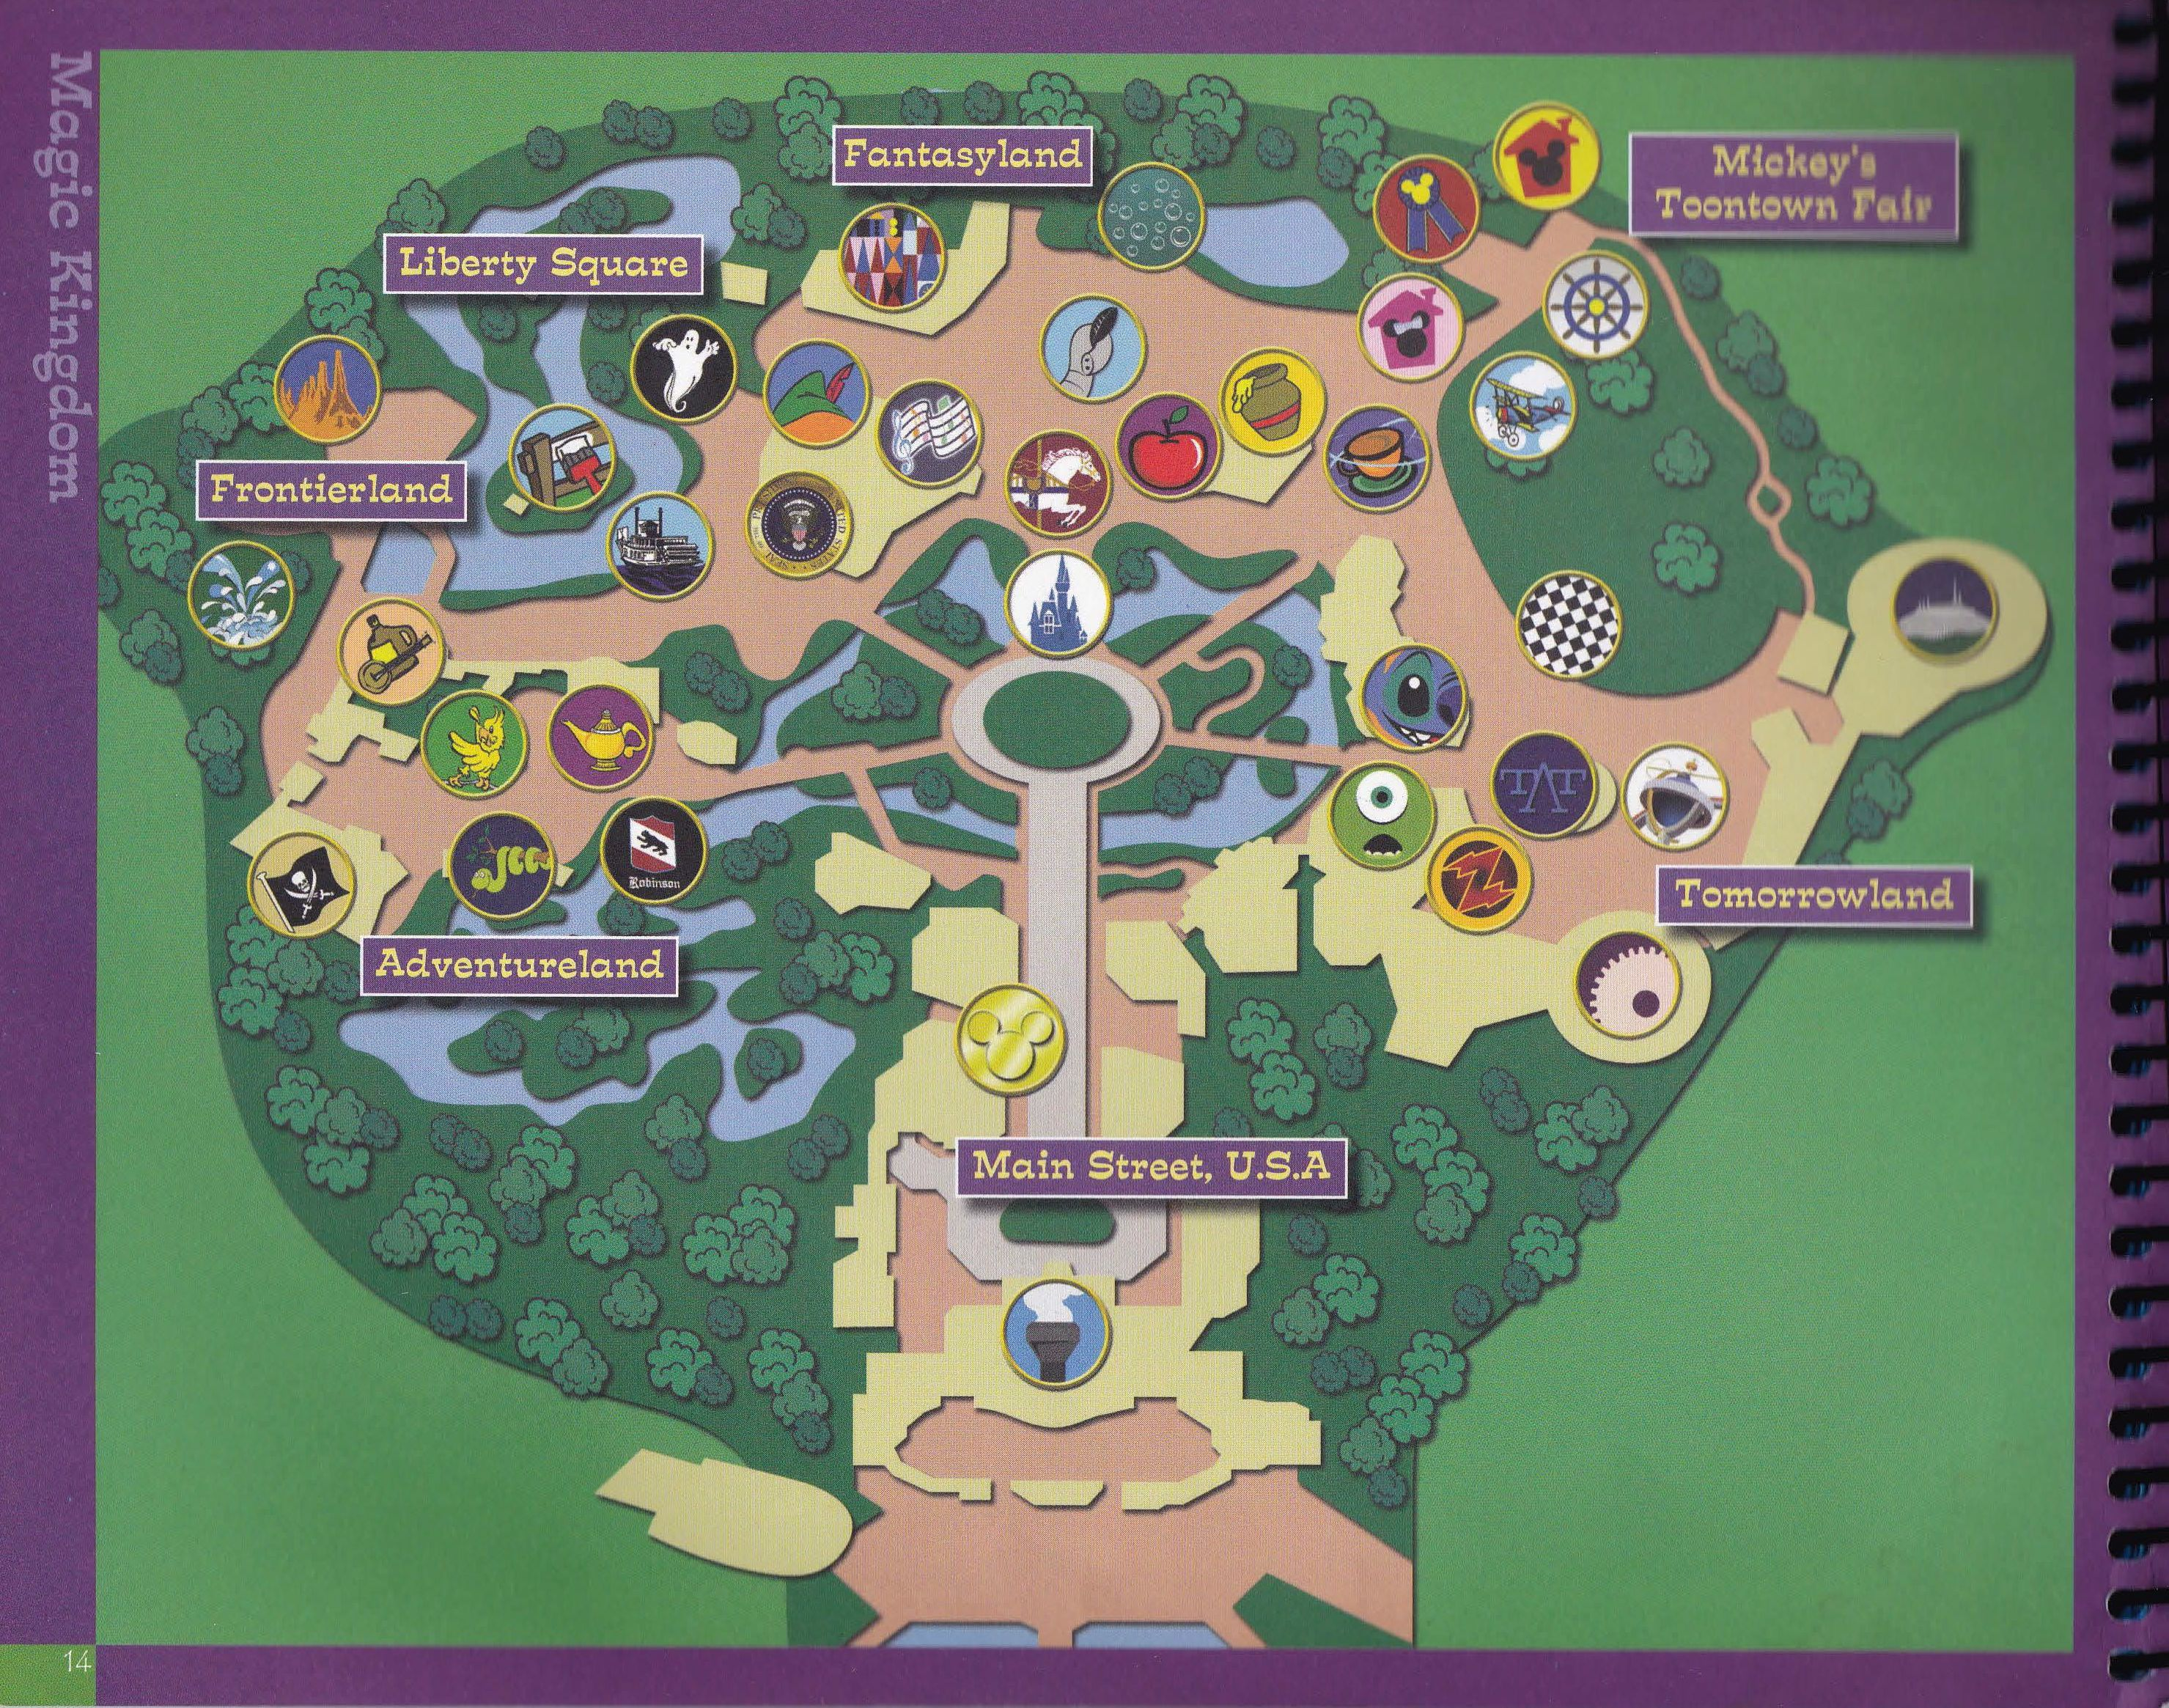 Mouseplanet - Disney Stuff - Walt Disney World Guide to the Magic ...